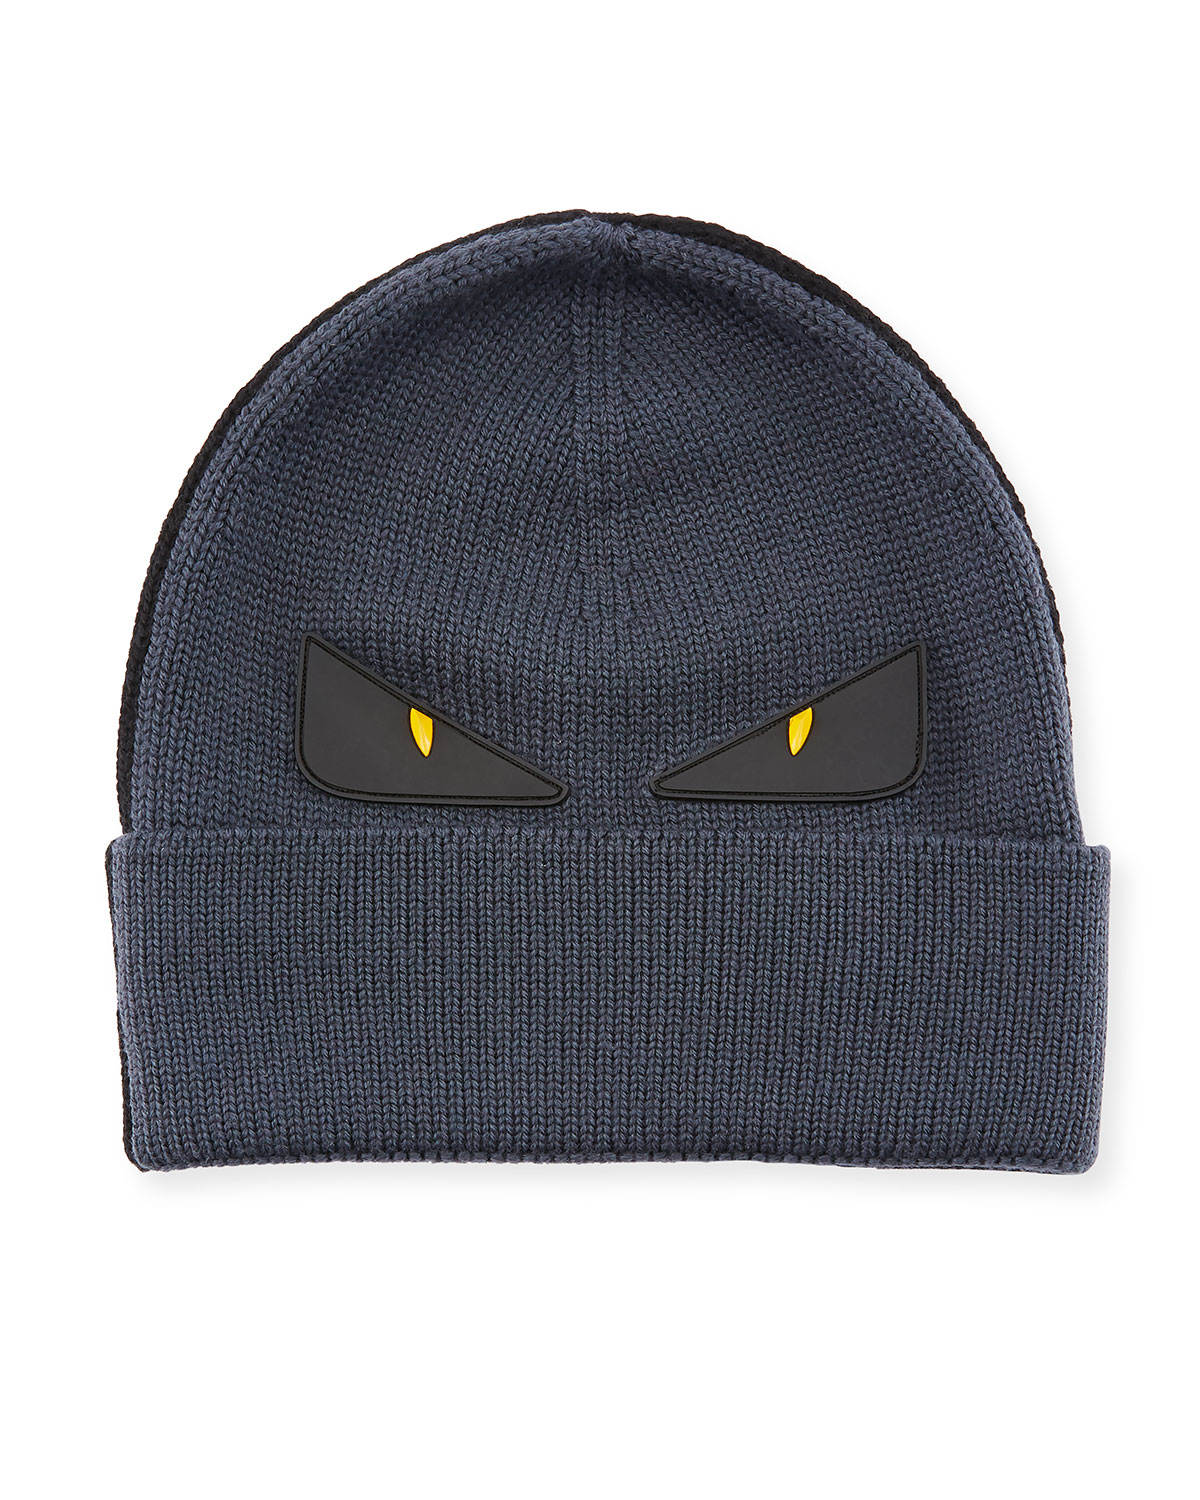 6582f9016d2 Fendi Monster Eyes Wool Beanie